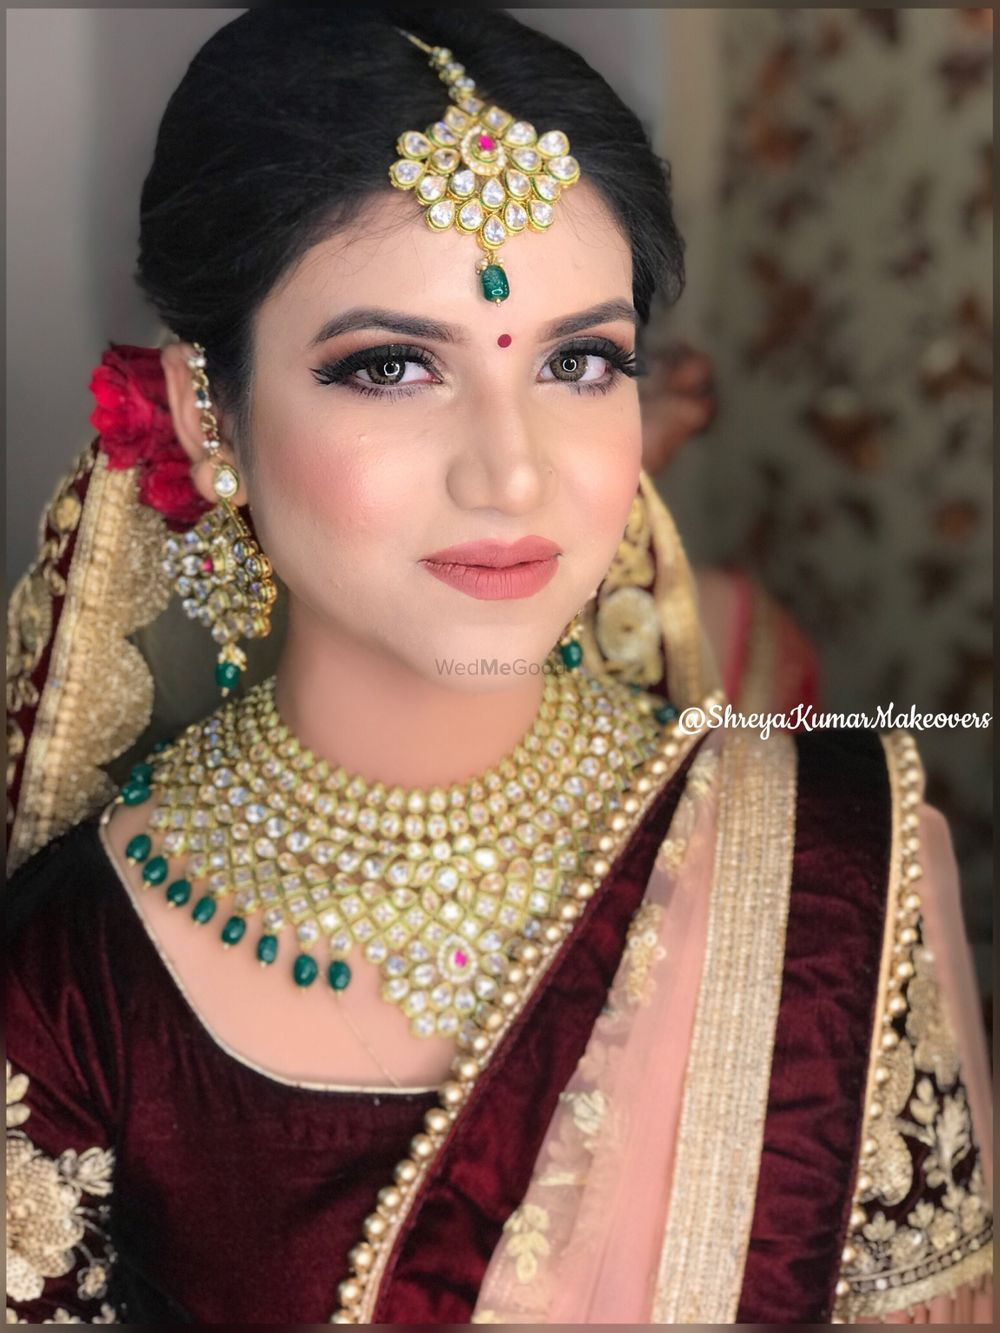 Photo From Top 10  - By Shreya Kumar's Makeup Studio